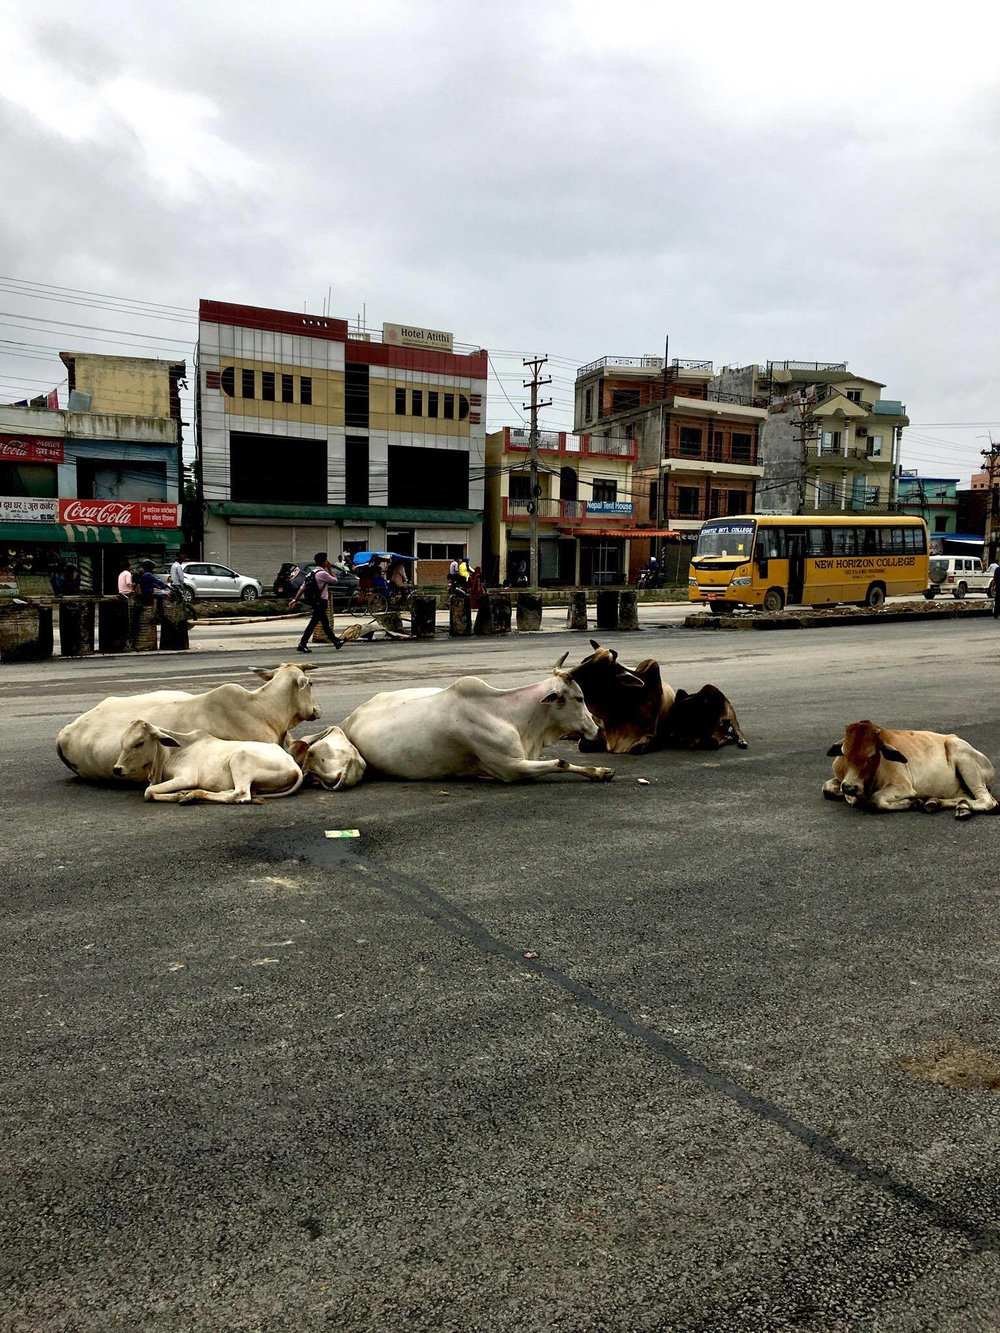 Cows casually pass time in the middle of the busy road. In Hindu culture, cows are considered sacred.